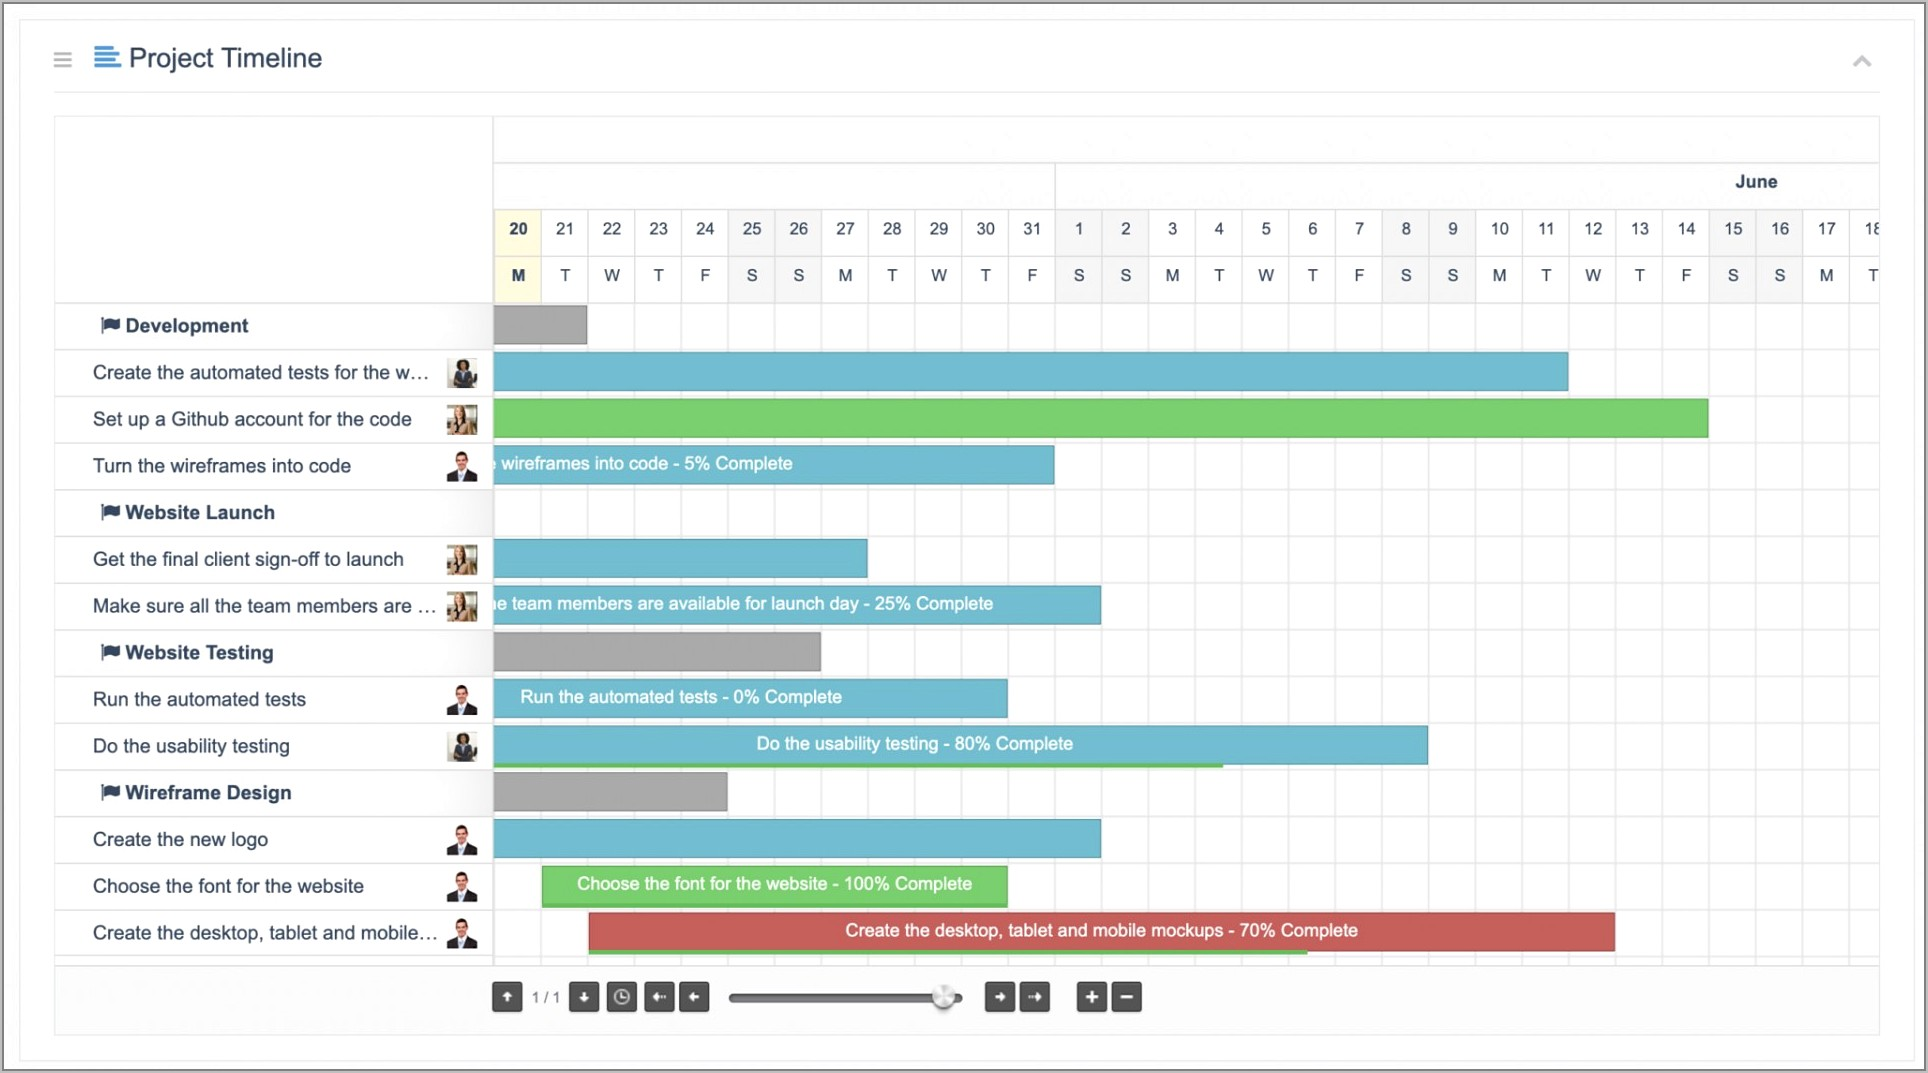 Timeline Chart Template Word